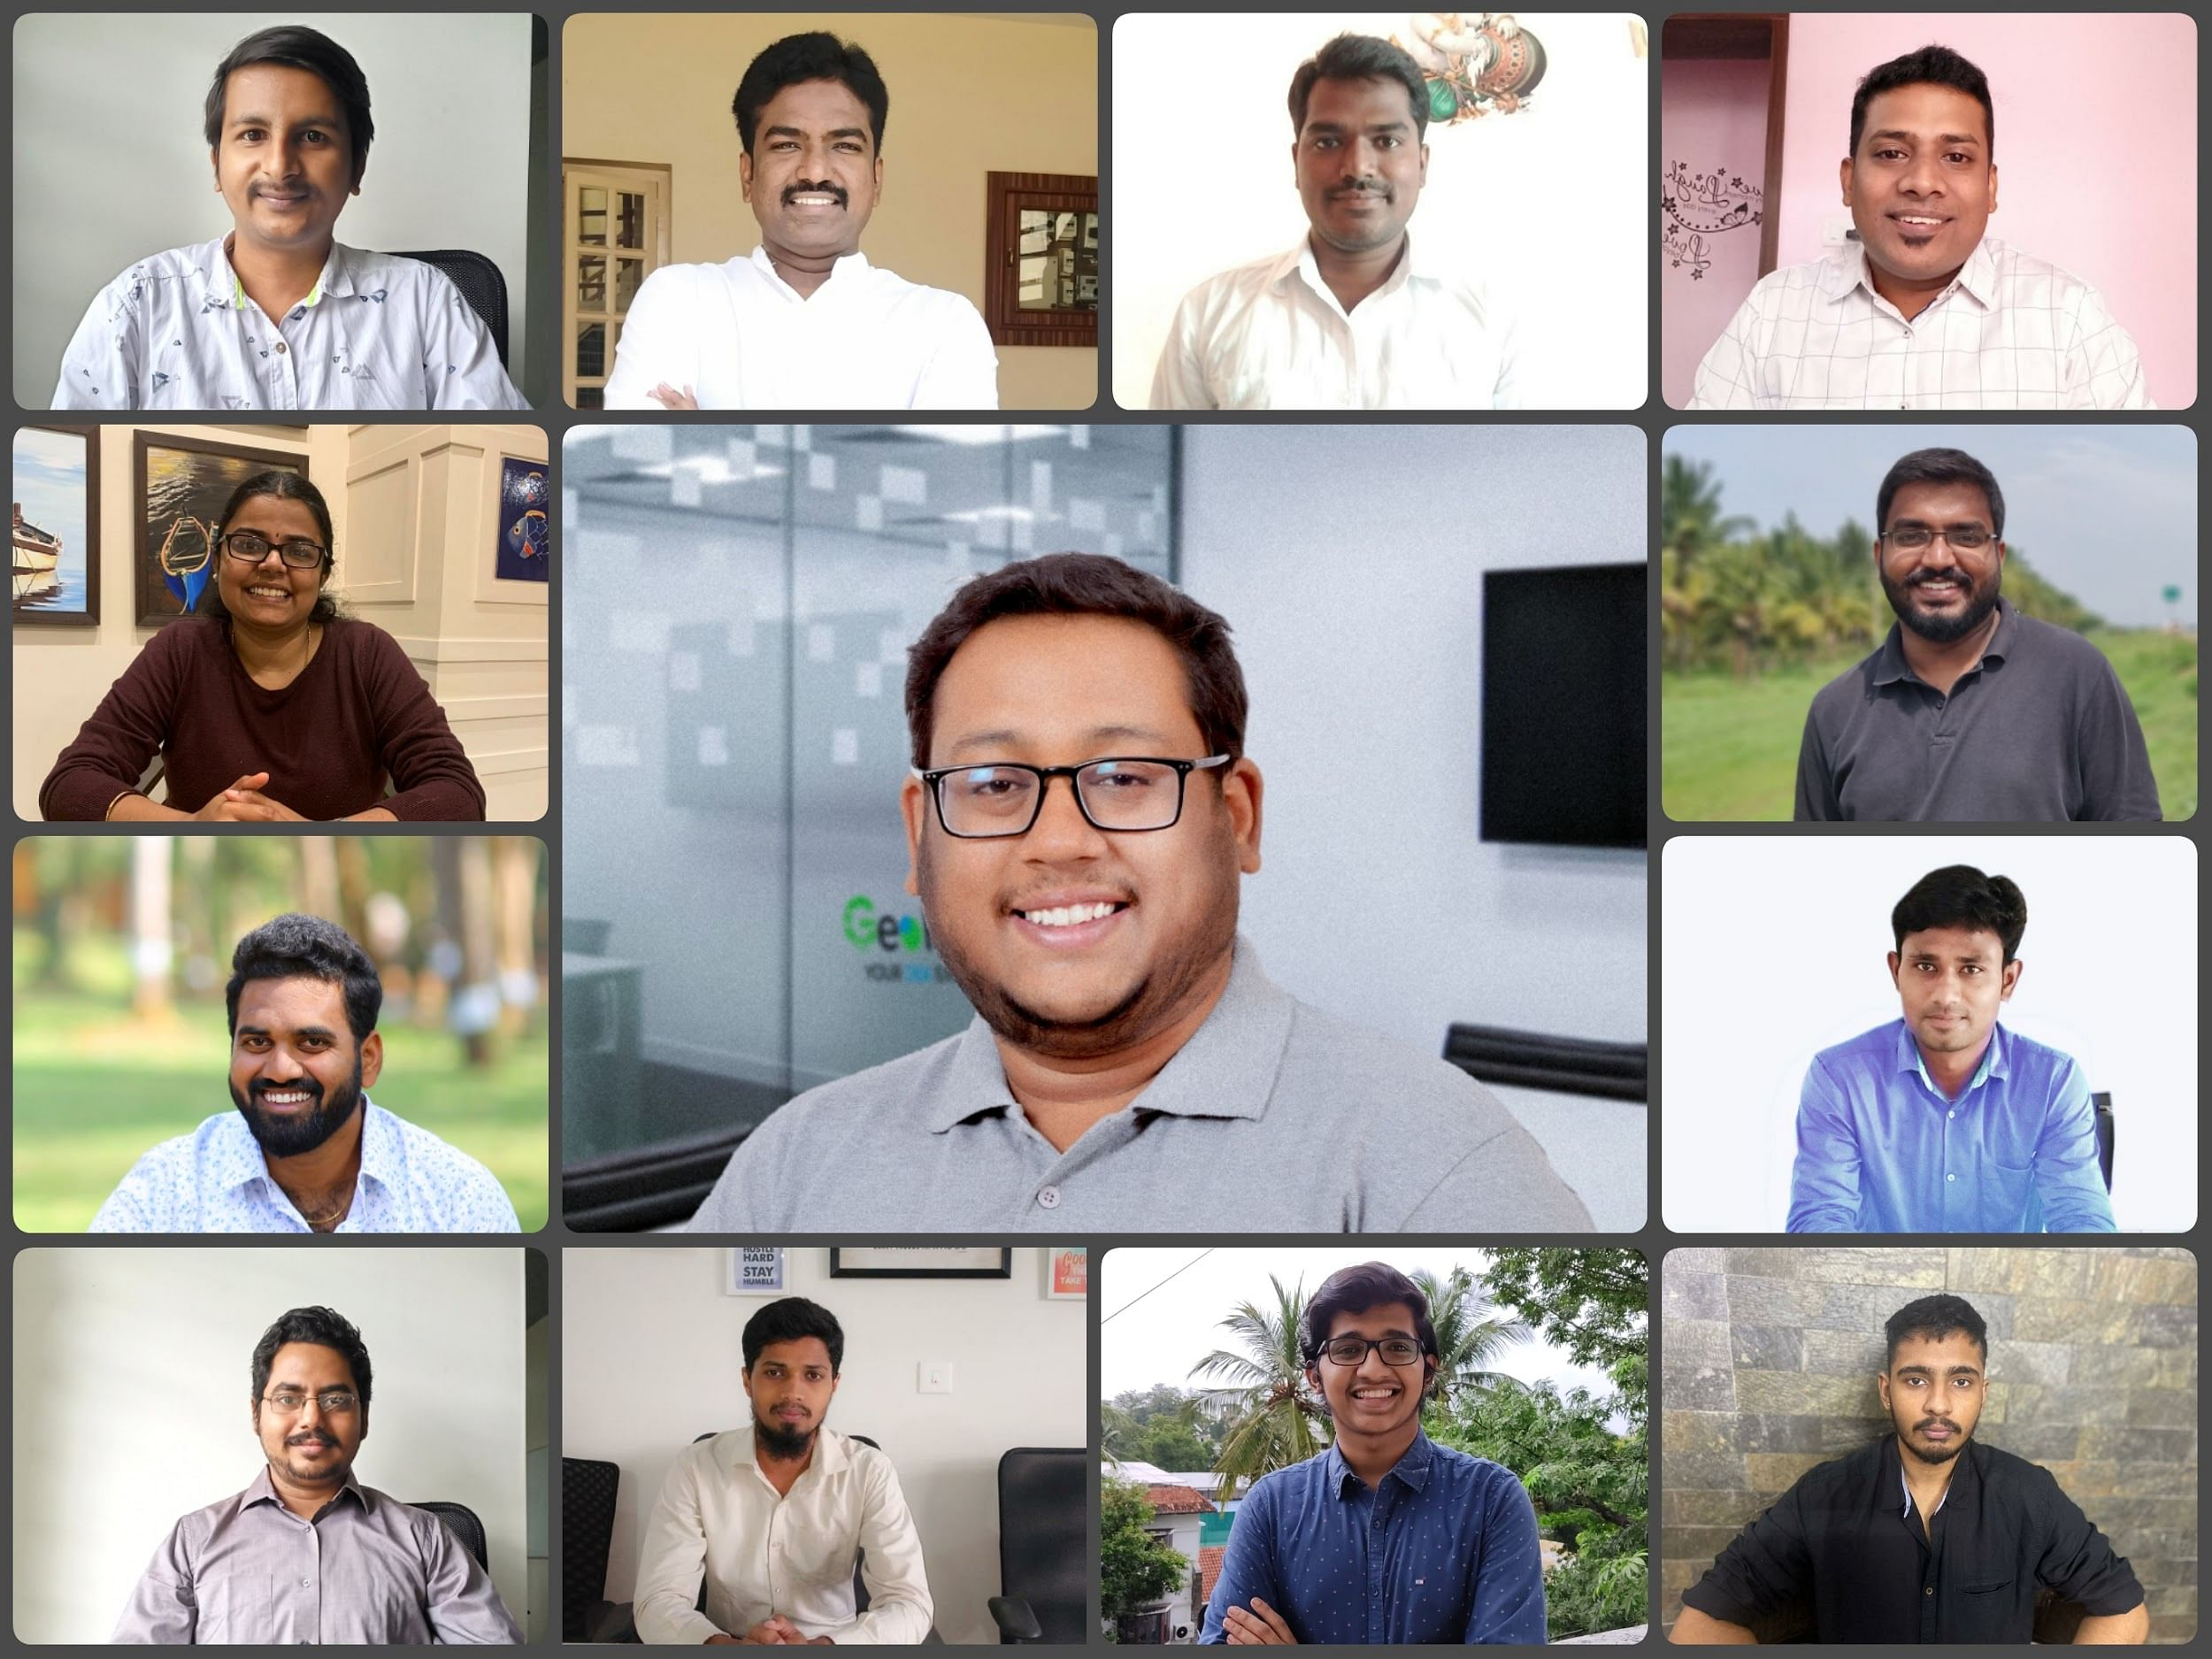 This Benglauru-based startup is enabling businesses to grow by specialising in all things data